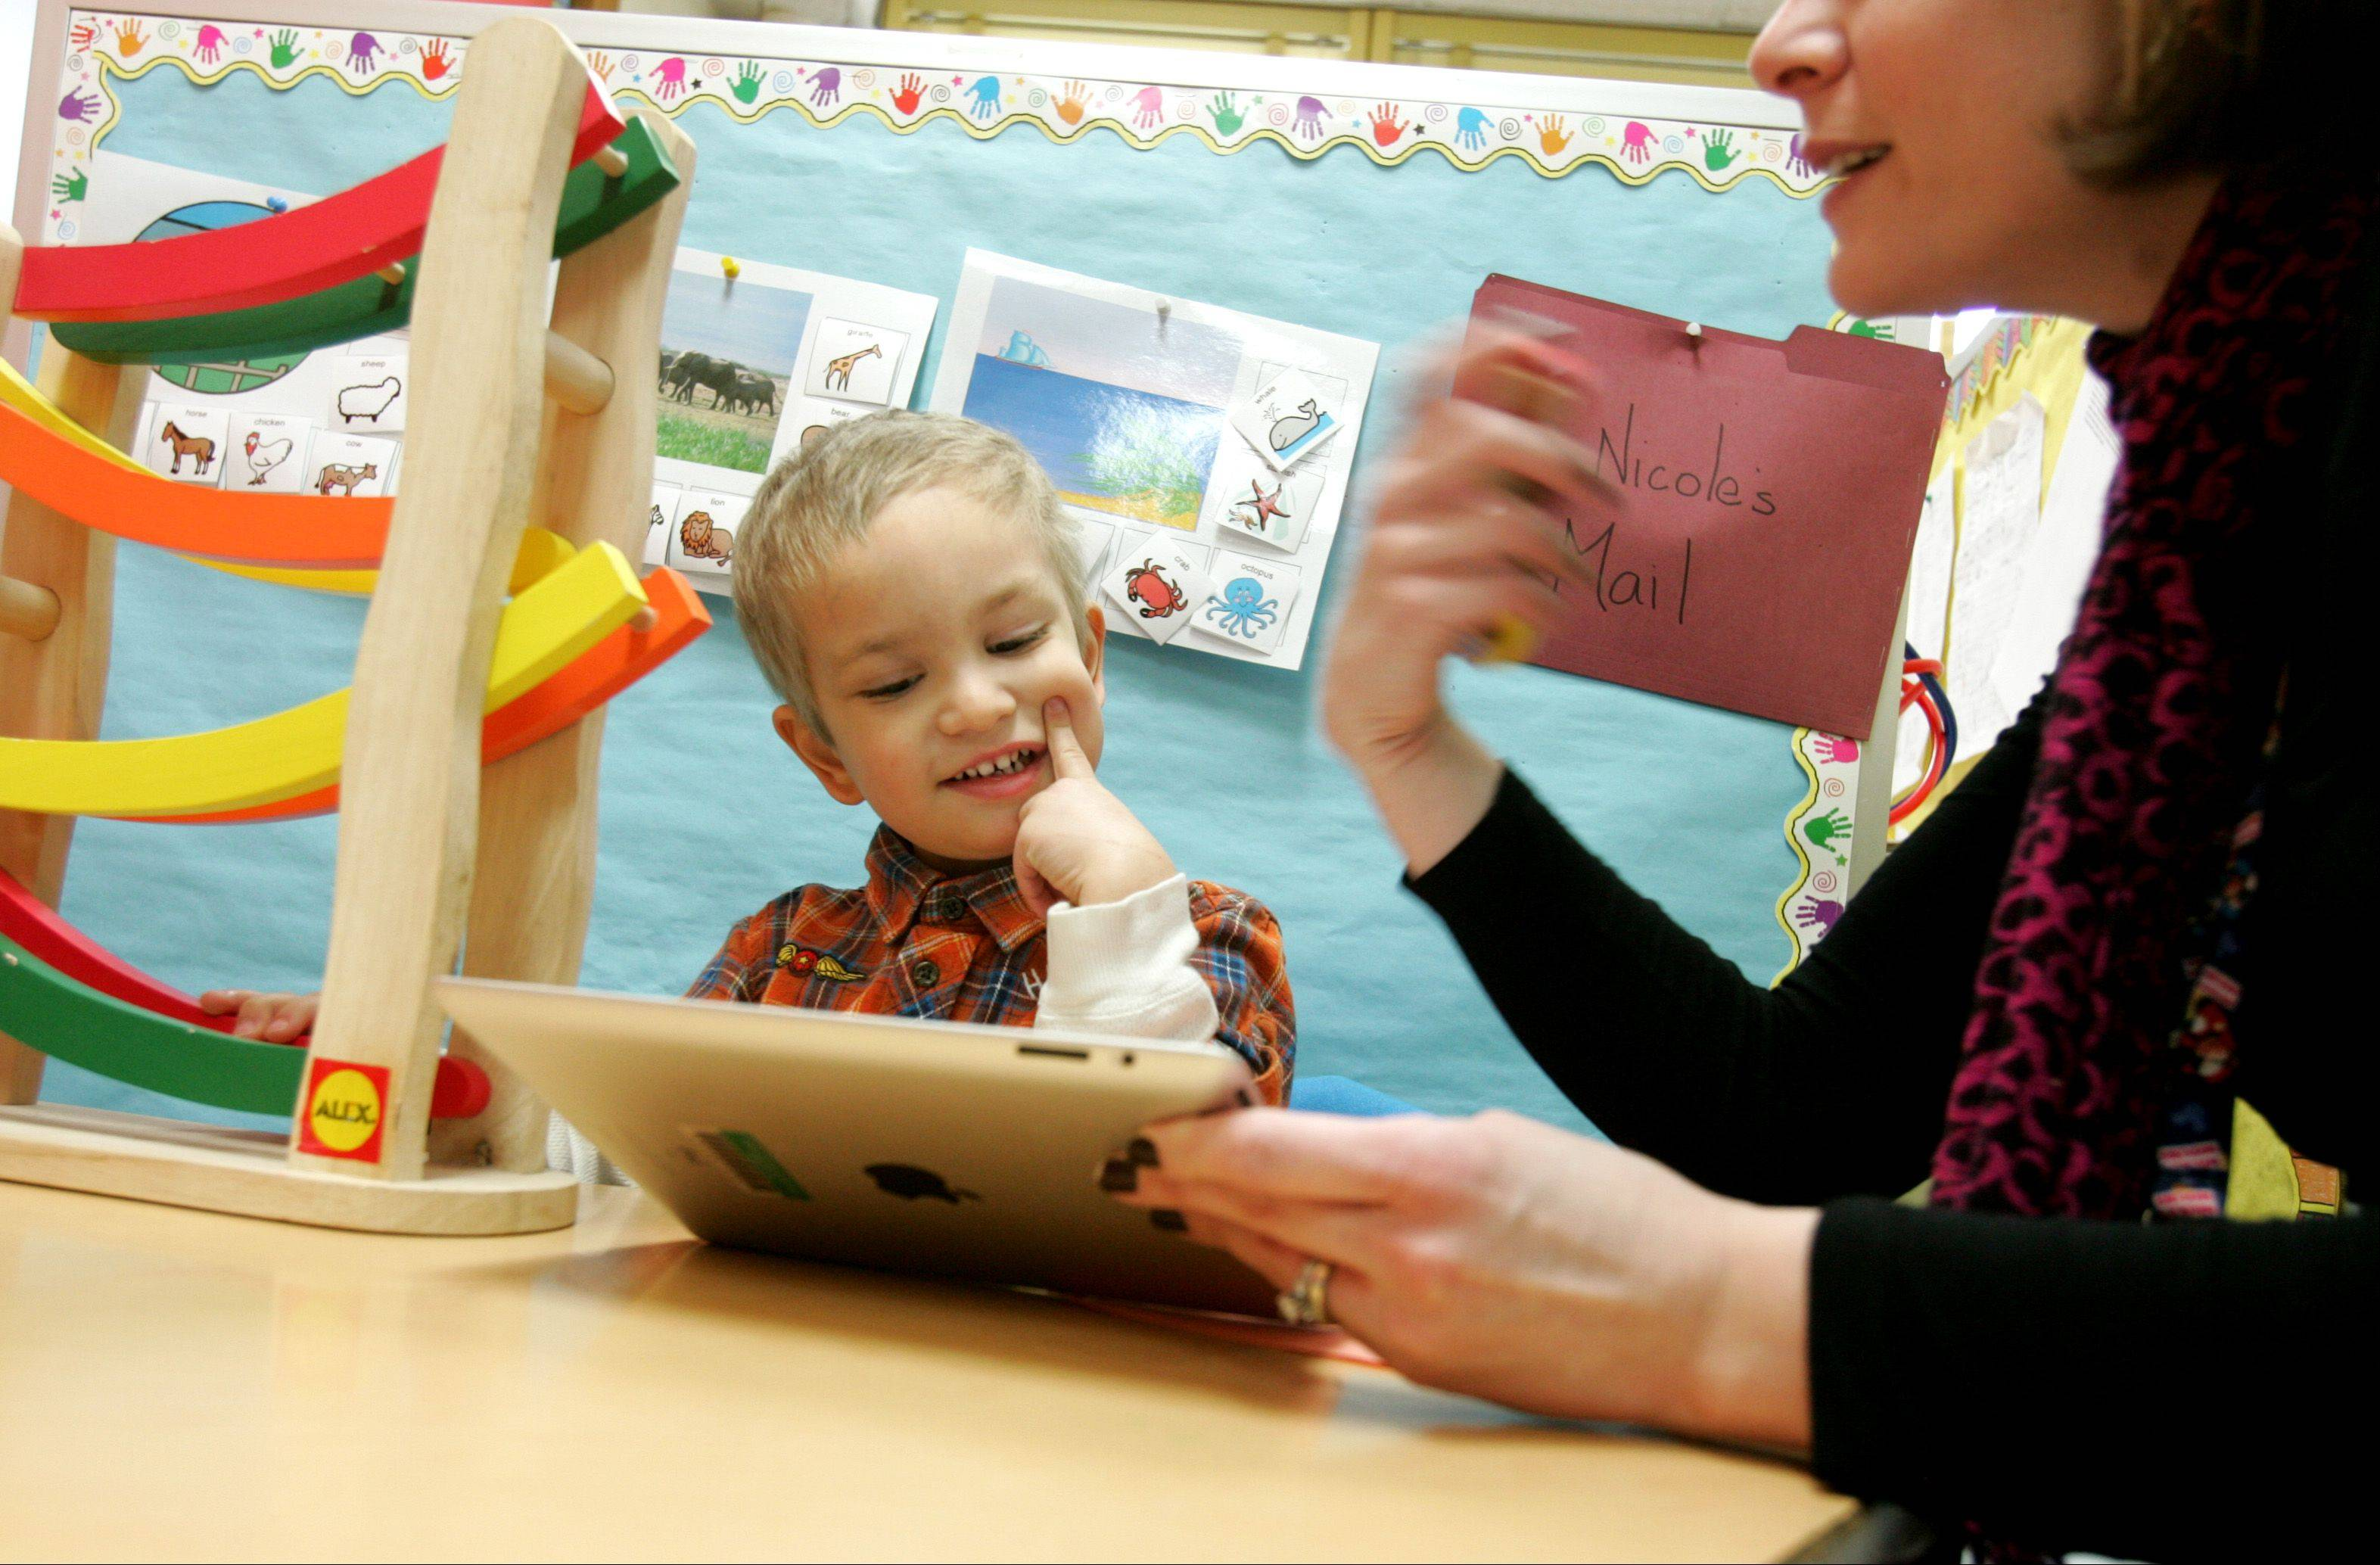 Reco Capparelli uses an ipad during his speech therapy with speech pathologist Nicole MacKinnon.